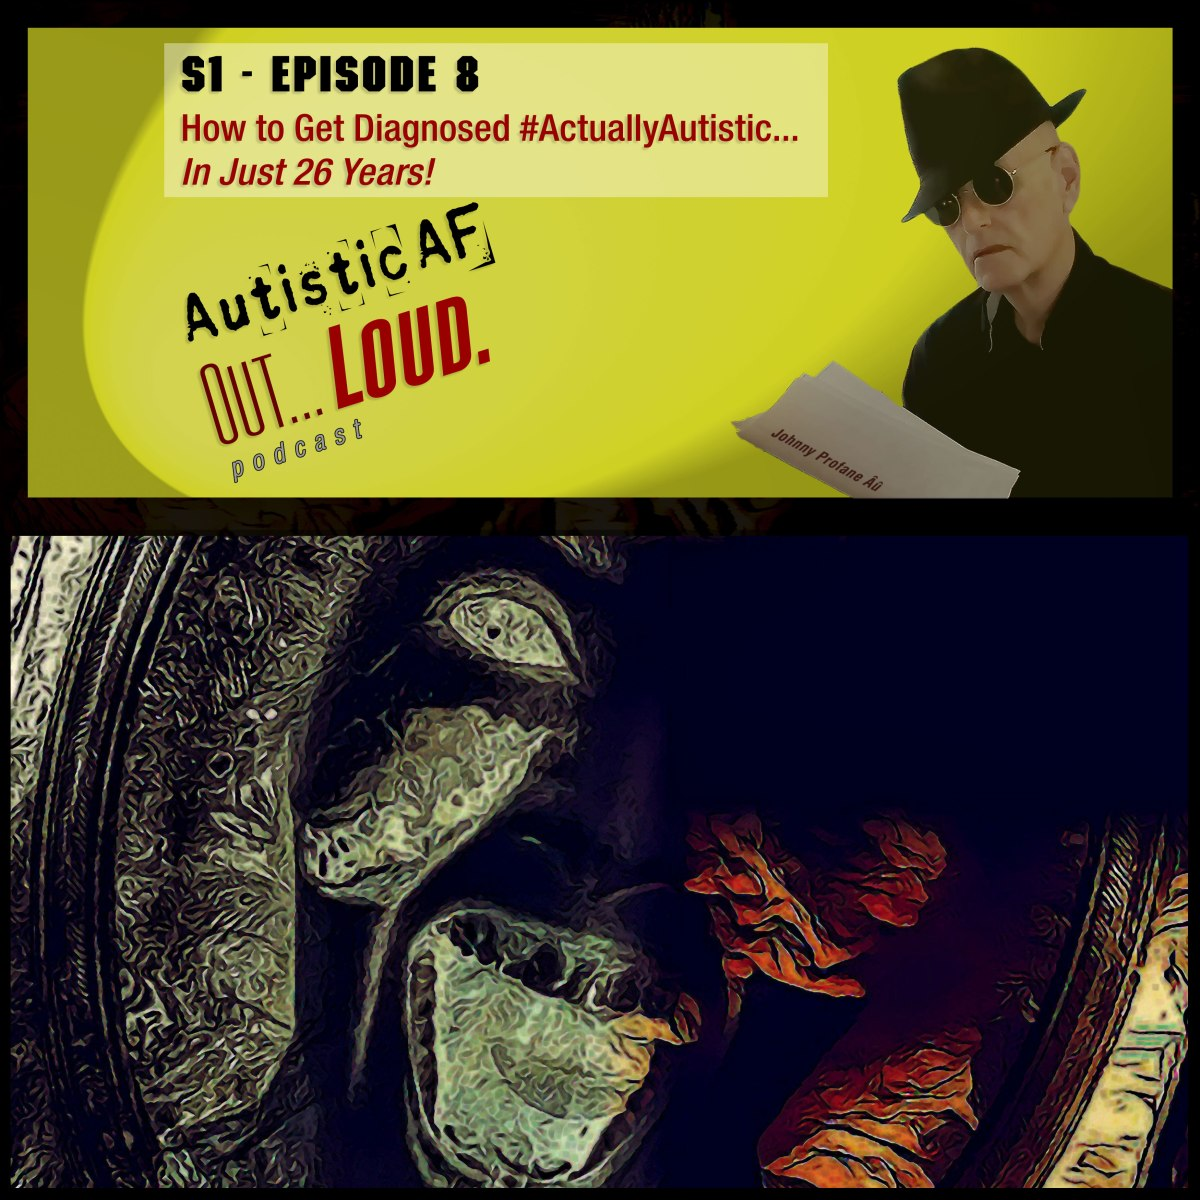 """""""How To Get Diagnosed #ActuallyAutistic... In Just 26 Years!"""" - AutisticAF Out Loud, Episode 8. Image: Top: Picture of older autistic man, wearing a Fedora, with caption """"S1 - Episode 8, How to Get Diagnosed #ActuallyAutistic... In Just 26 Years! AutisticAF Out Loud Podcast. Bottom: Dark illustration, black, red & brown, of a screaming zombie's mouth reflected in a mirror."""